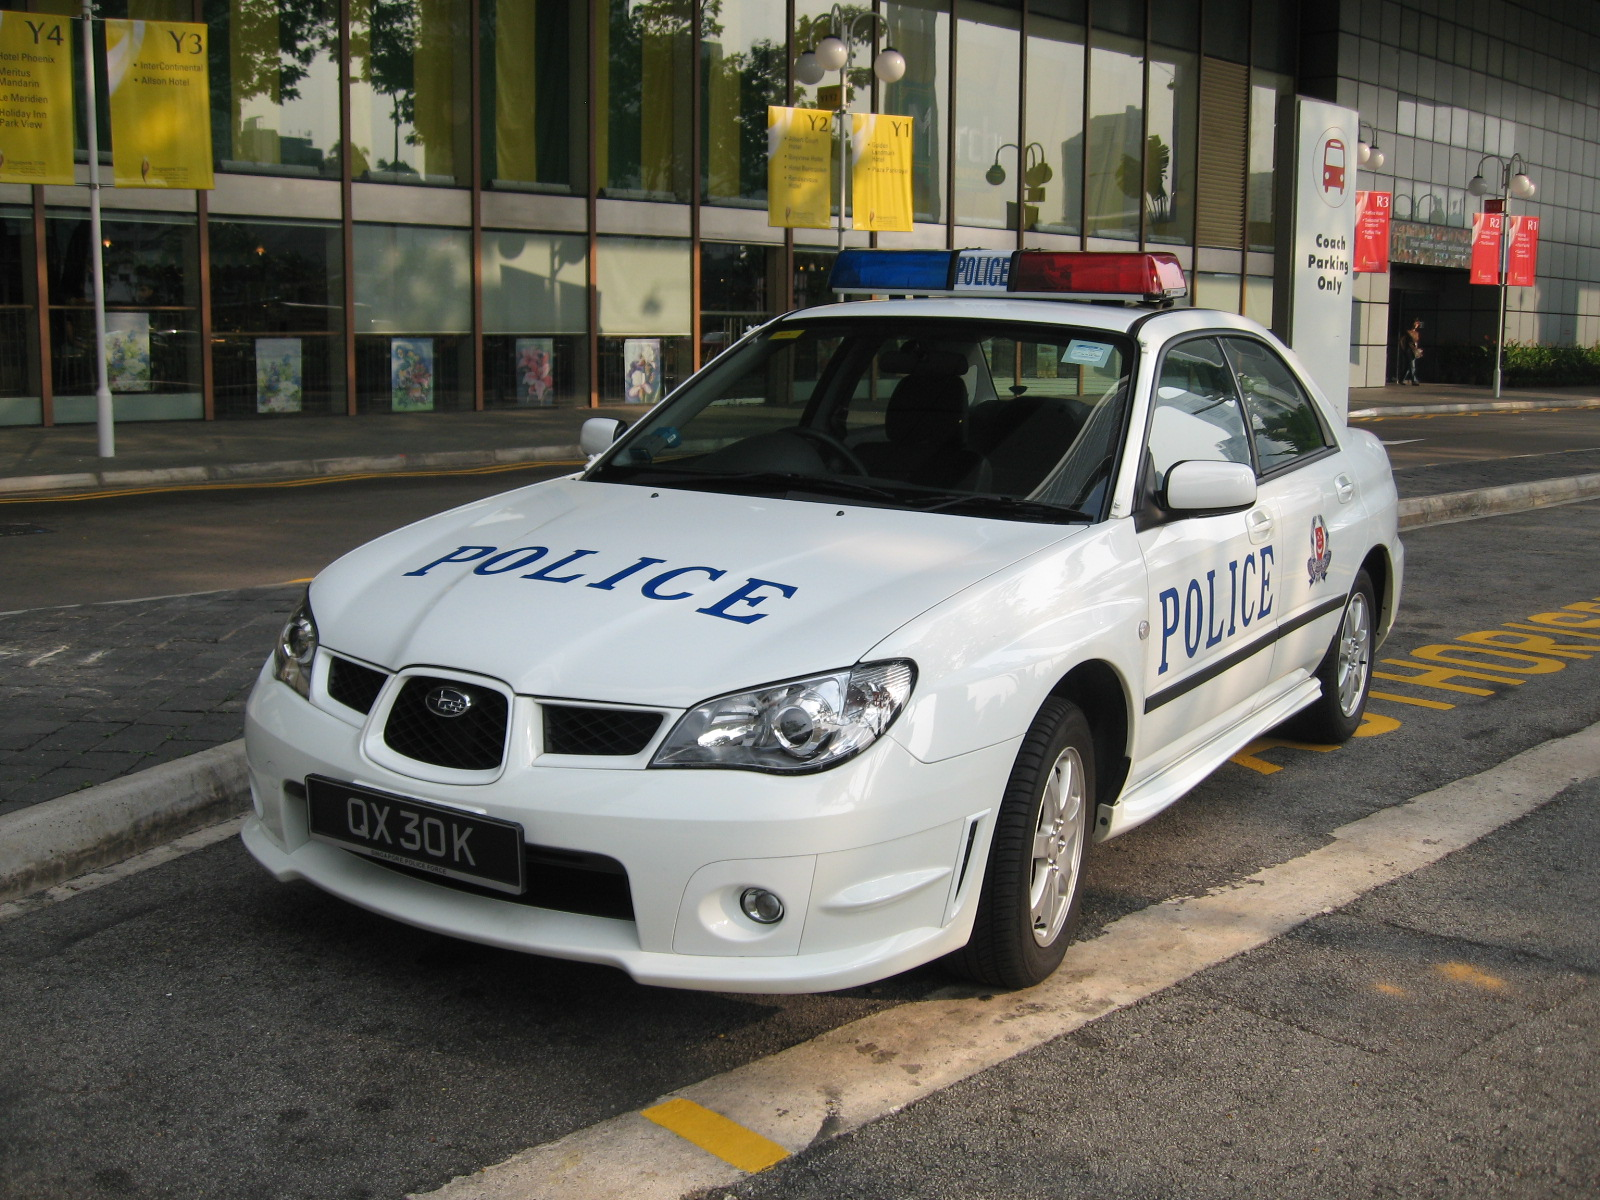 X Police Cars For Sale